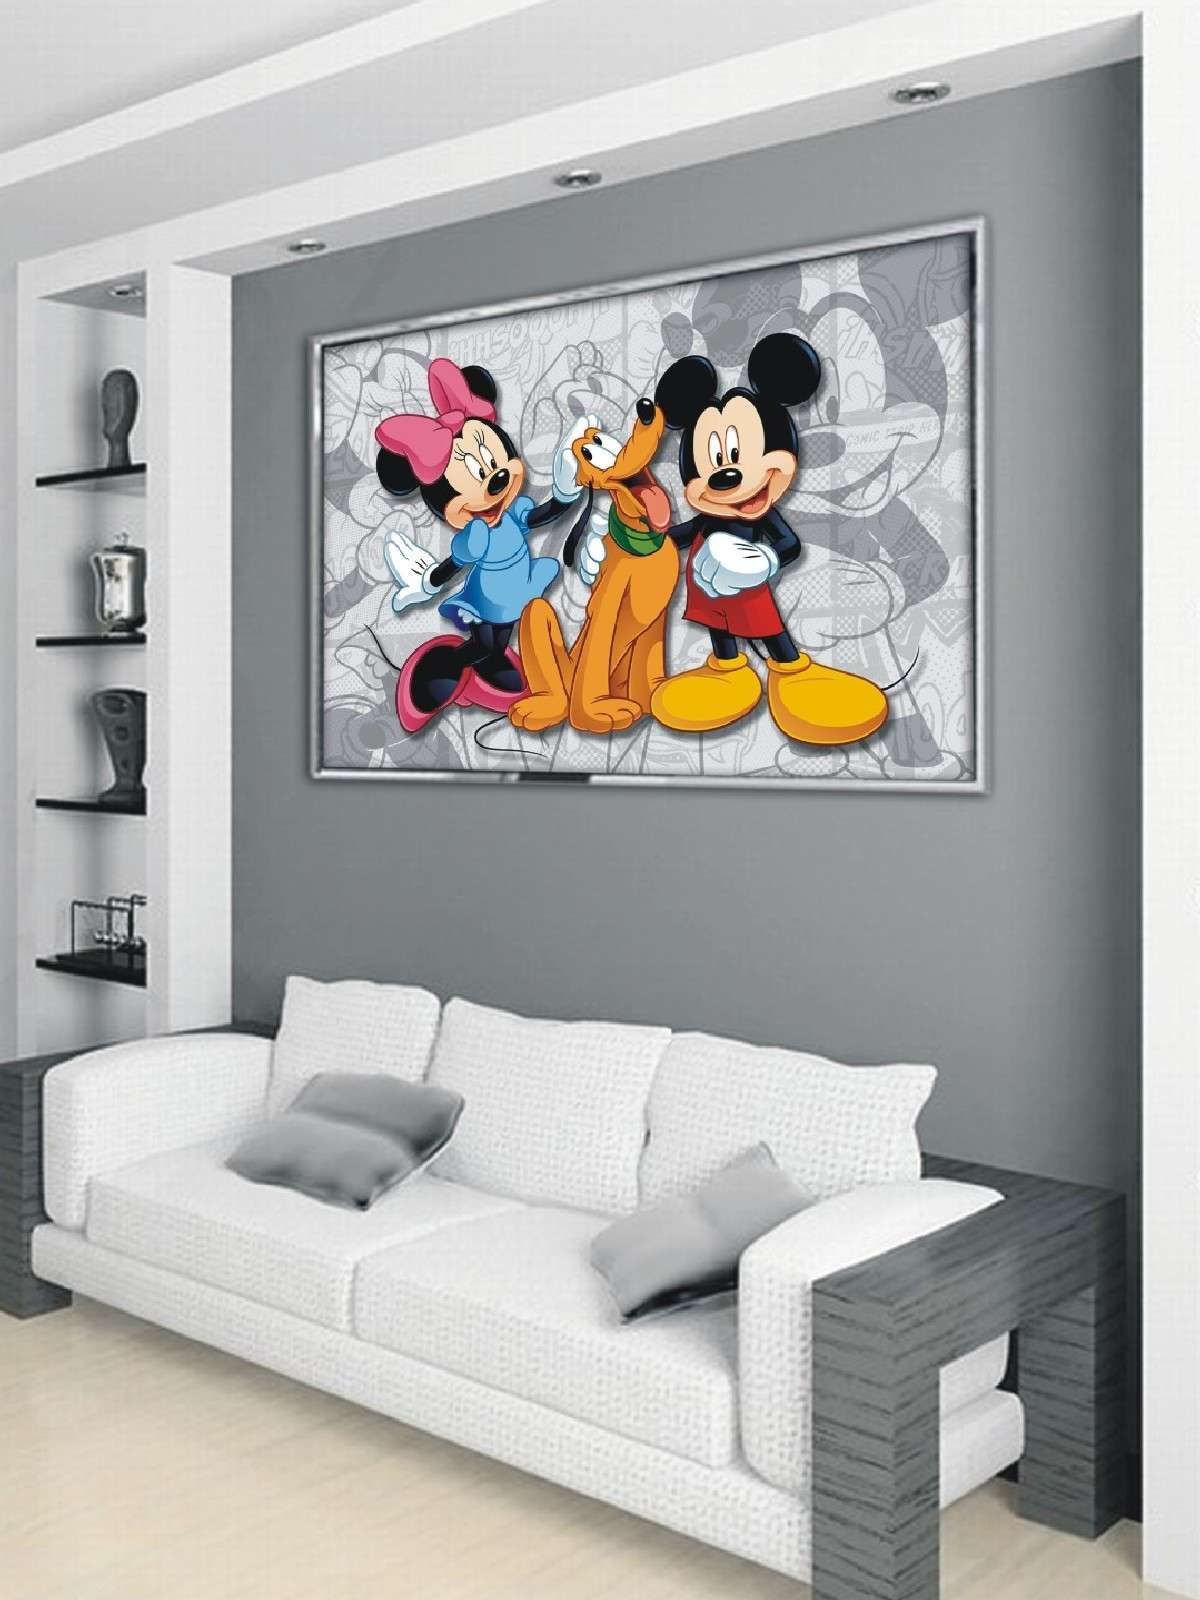 Comic Wall Room Images - Disney Mickey Mouse Comic Small